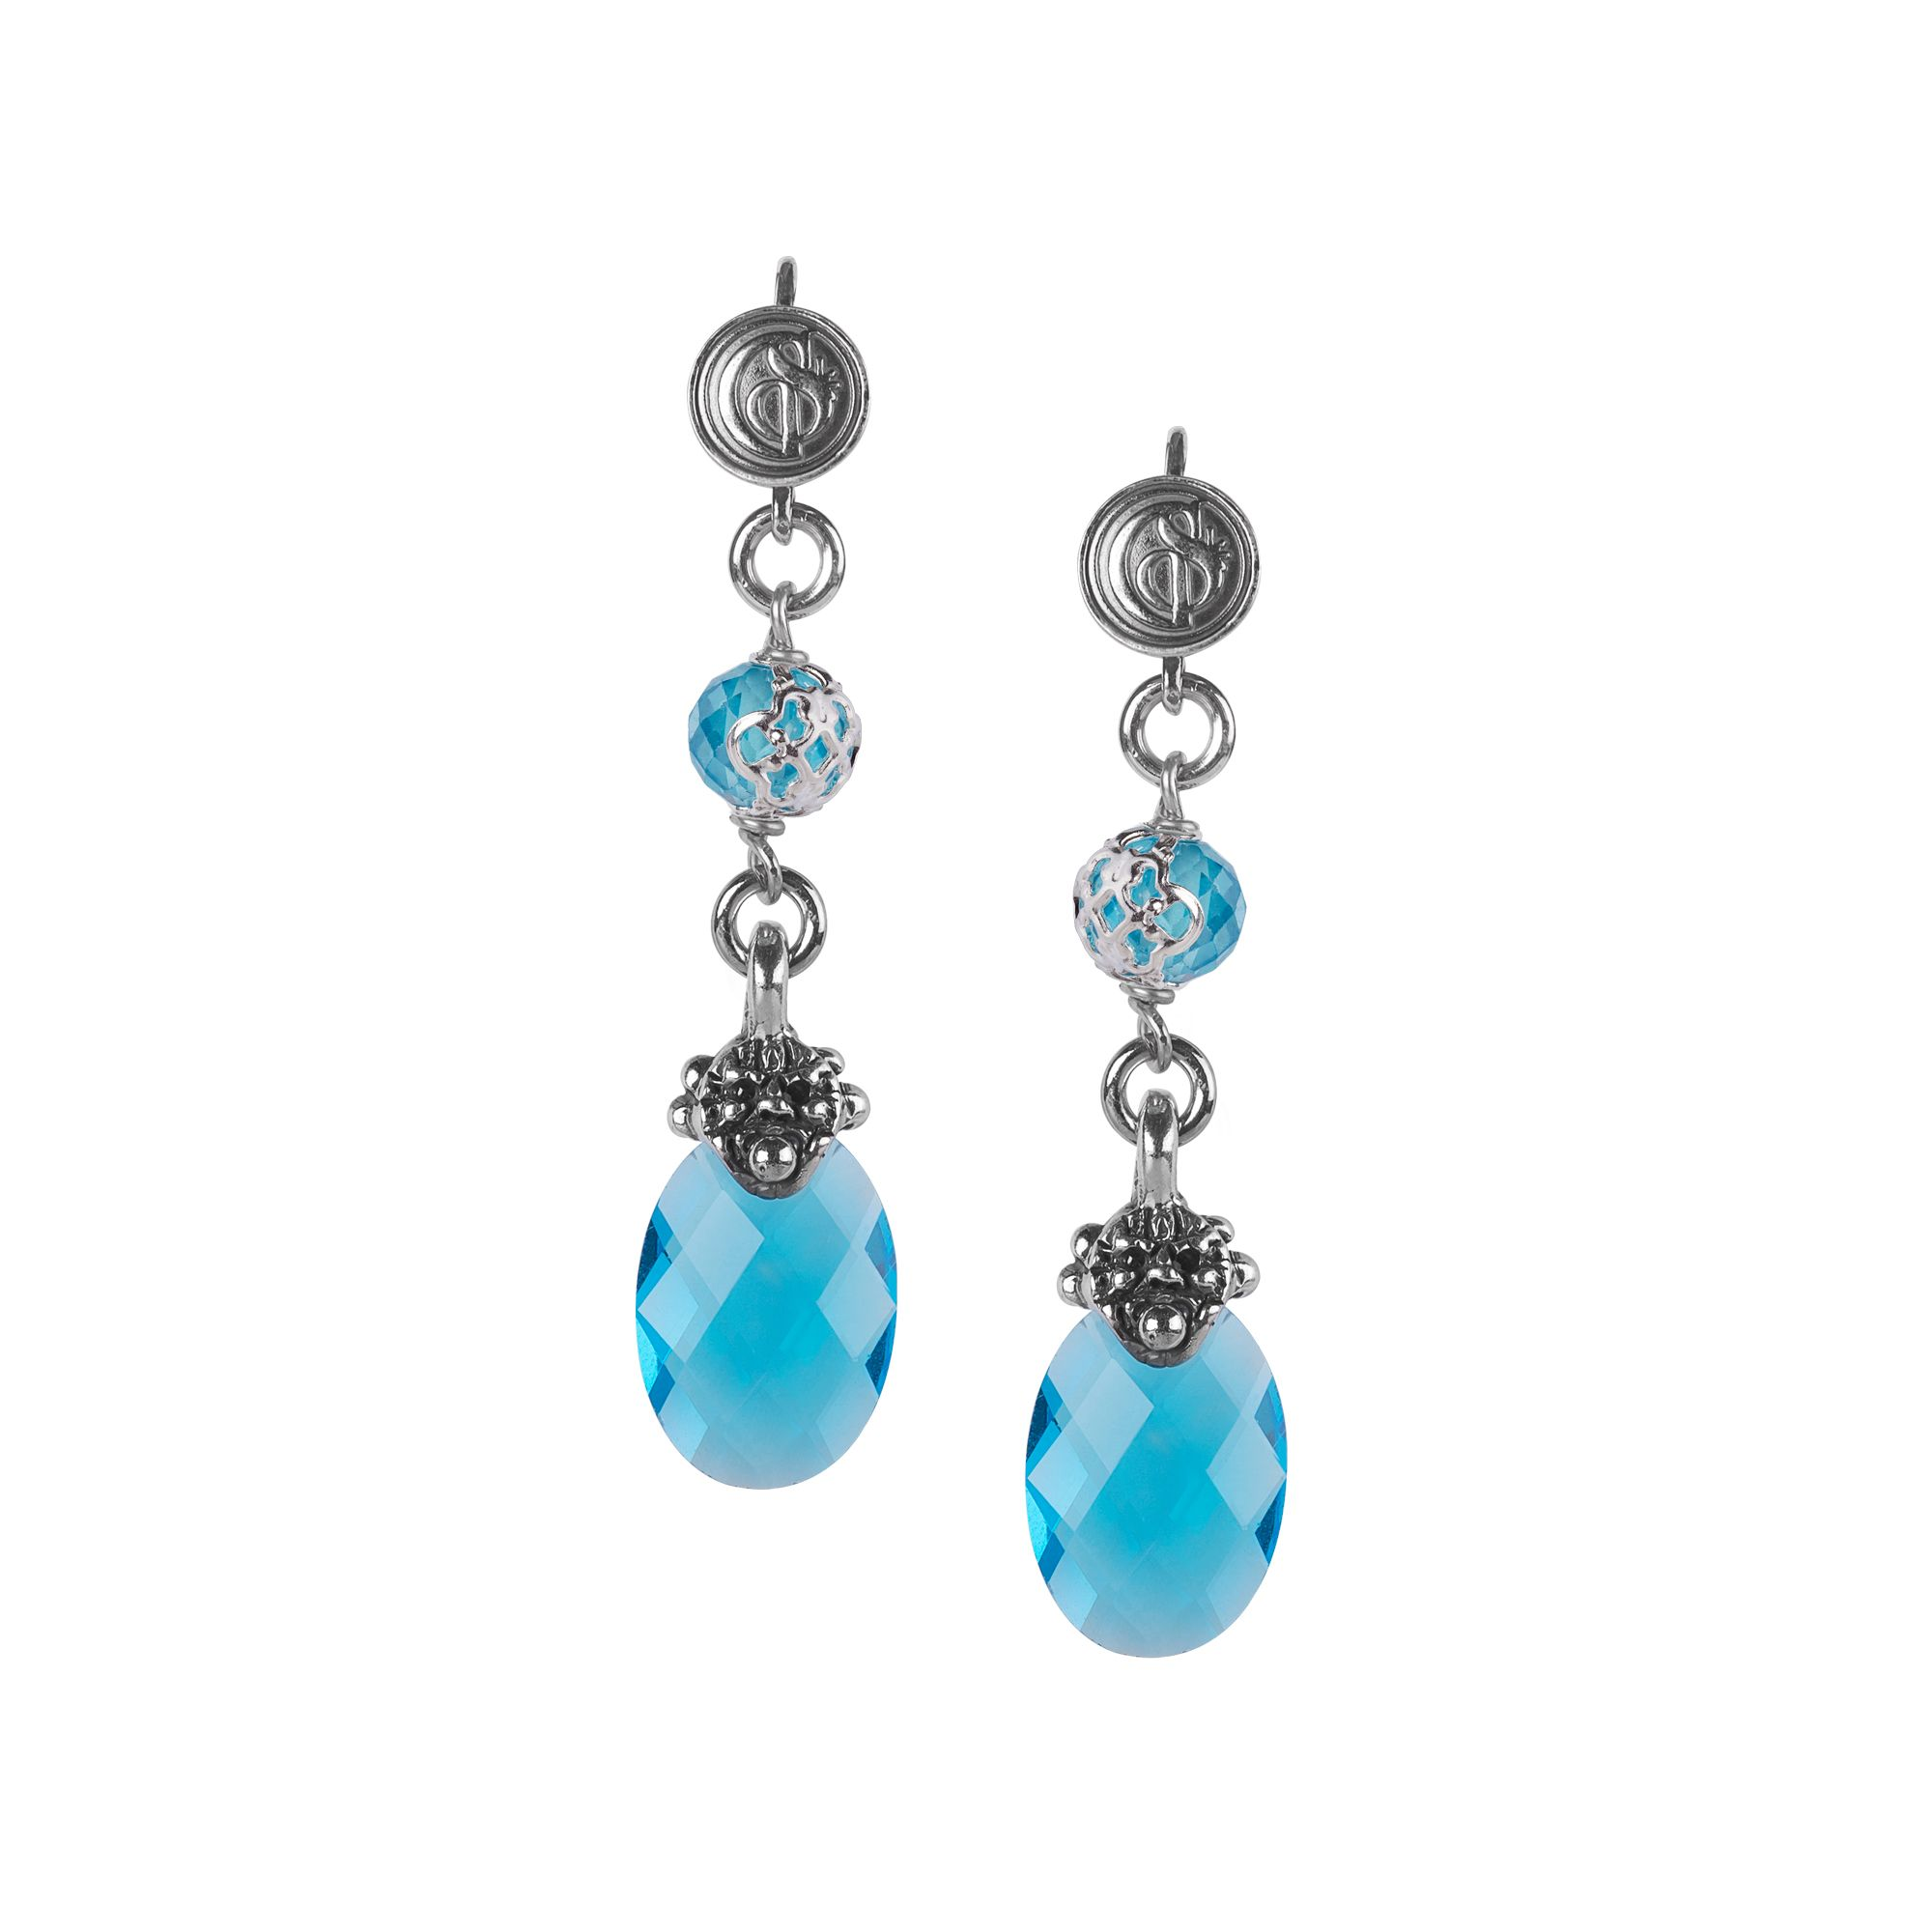 Iride Earrings (27530)